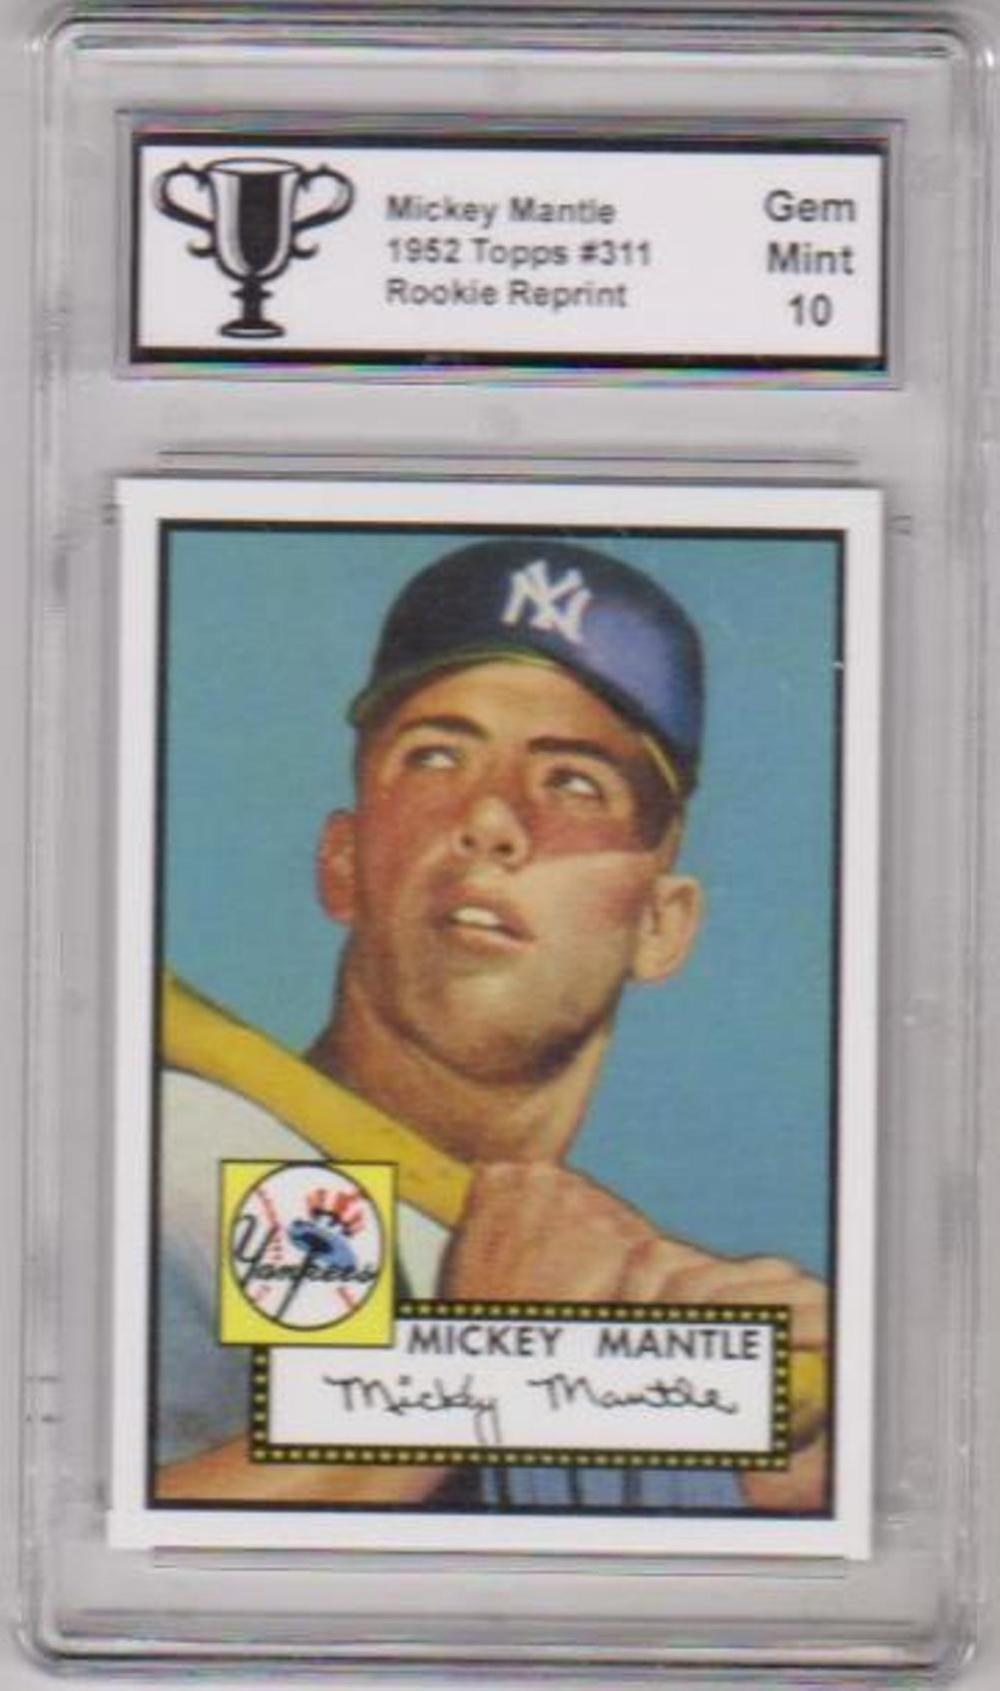 Graded Gem Mint 10 - MICKEY MANTLE 1952 Topps #311 Topps 1952 Reprint Series